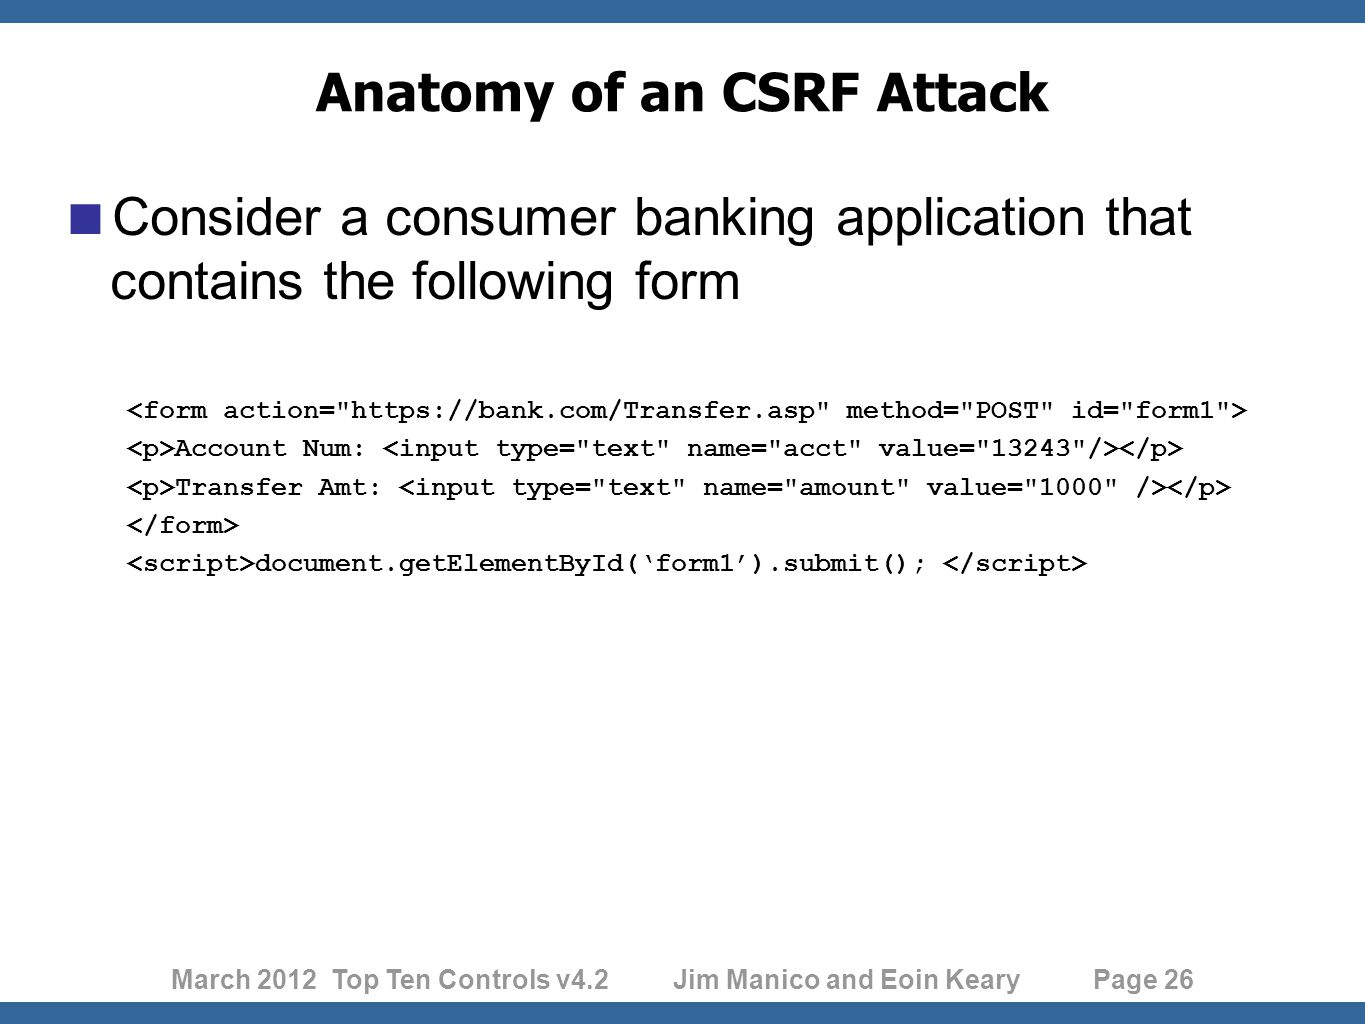 March 2012 Top Ten Controls v4.2 Jim Manico and Eoin Keary Page 26 Anatomy of an CSRF Attack  Consider a consumer banking application that contains the following form Account Num: Transfer Amt: document.getElementById('form1').submit();